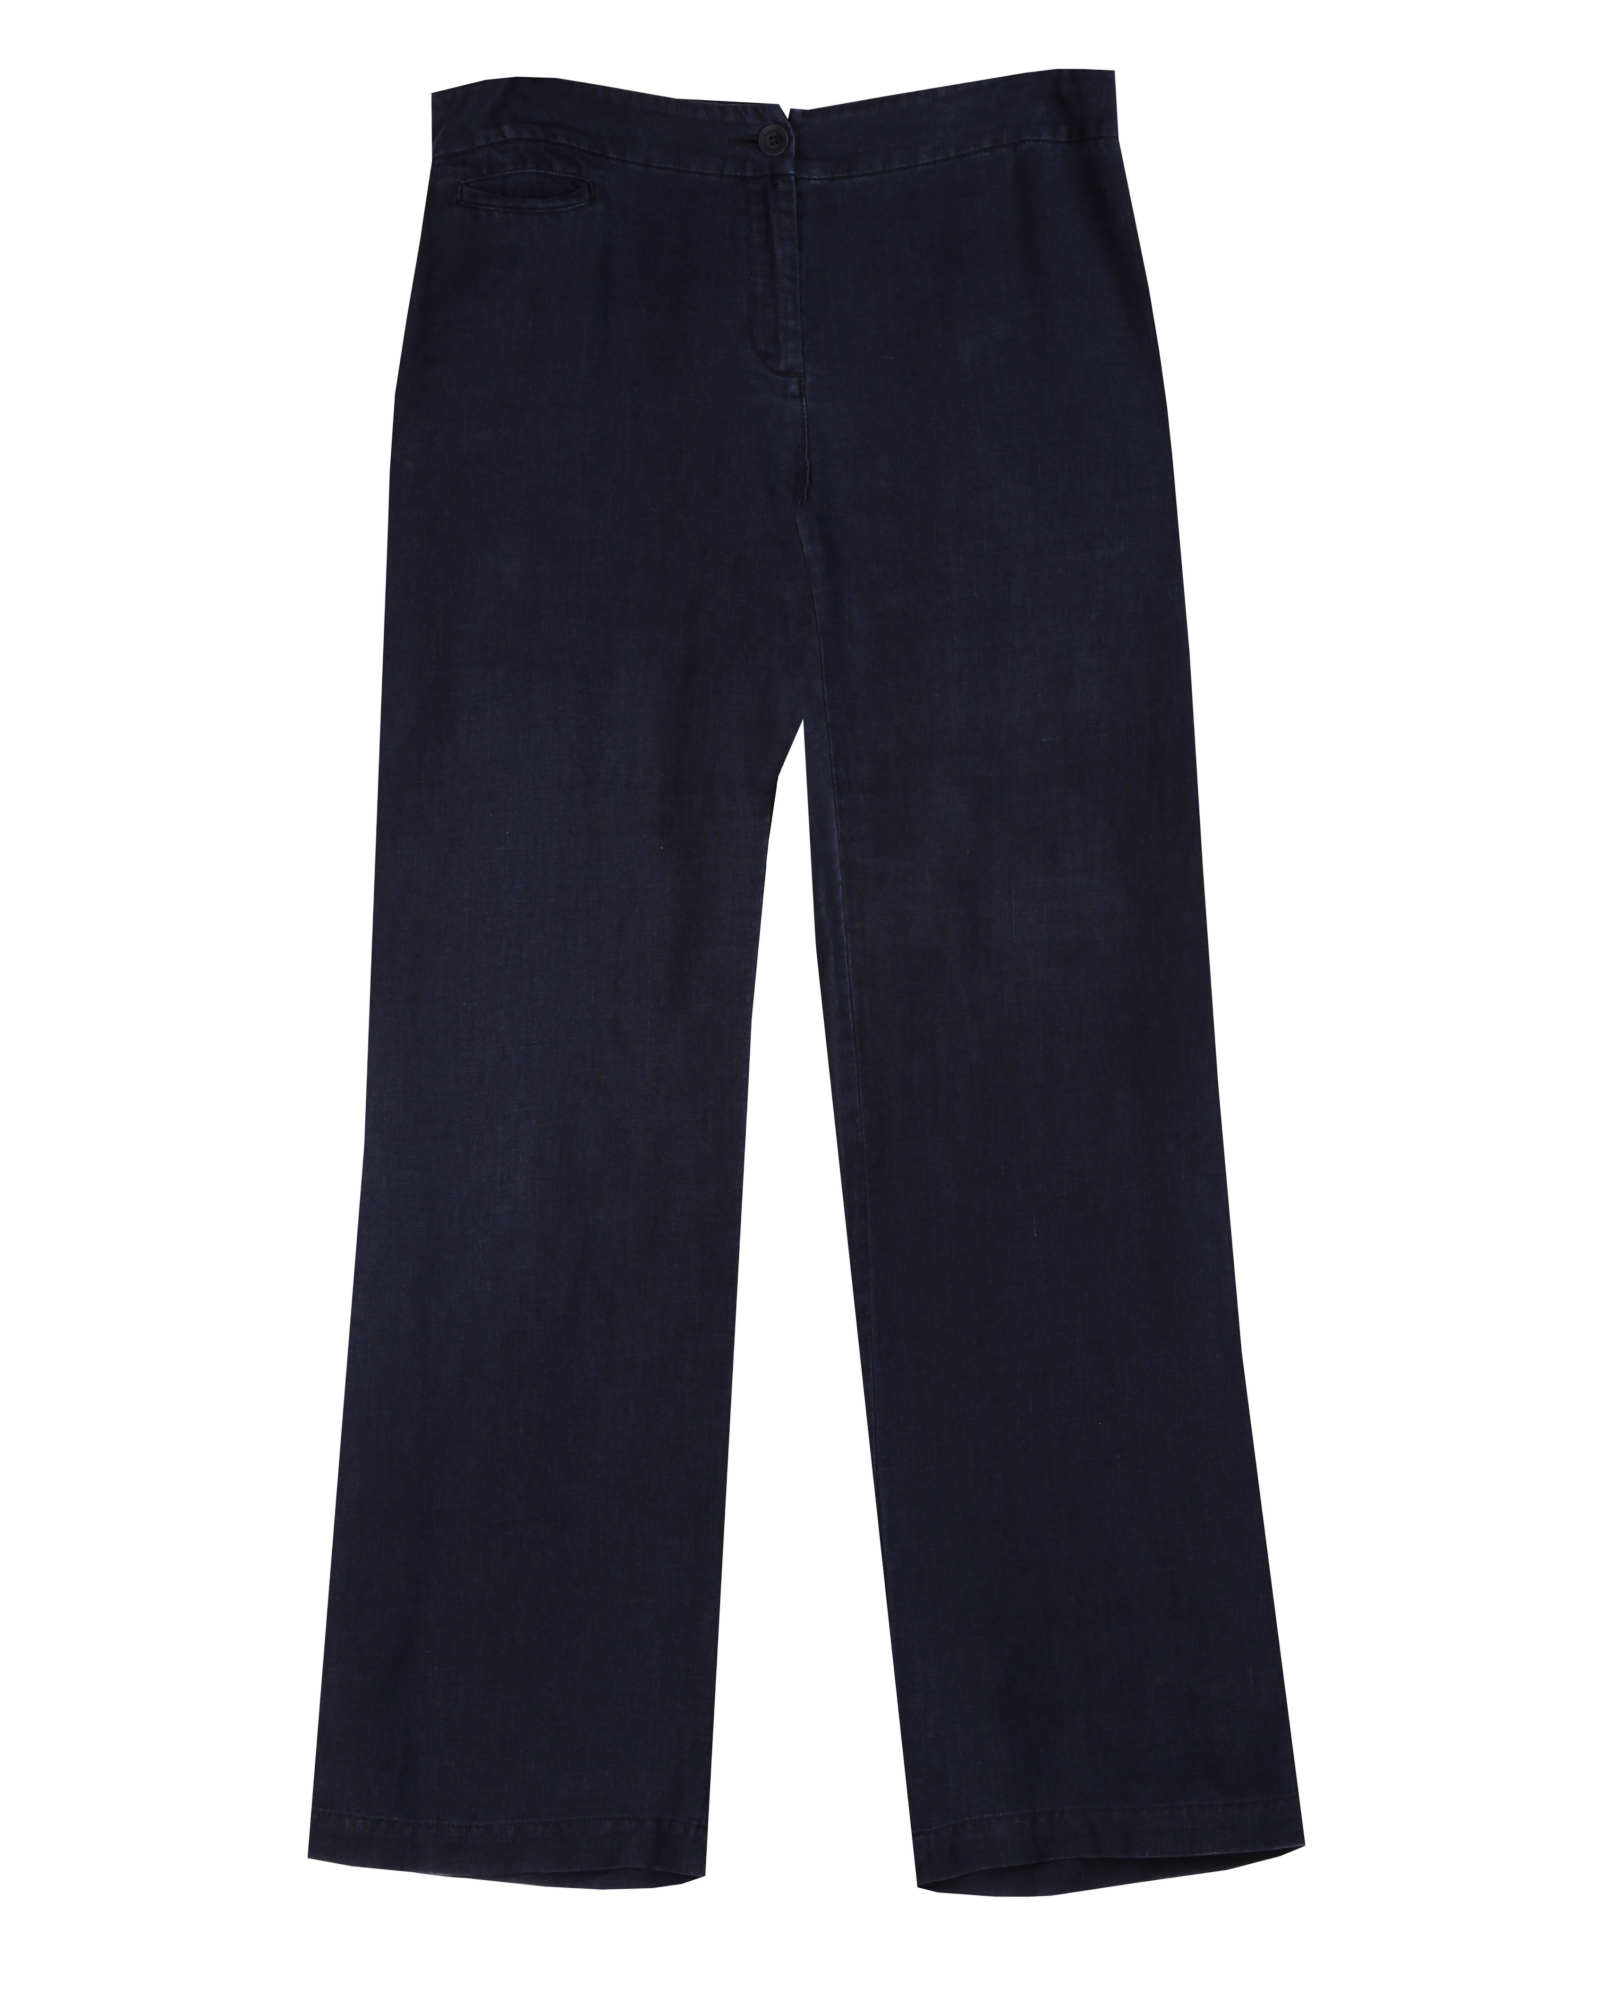 Washed Linen Twill Pant